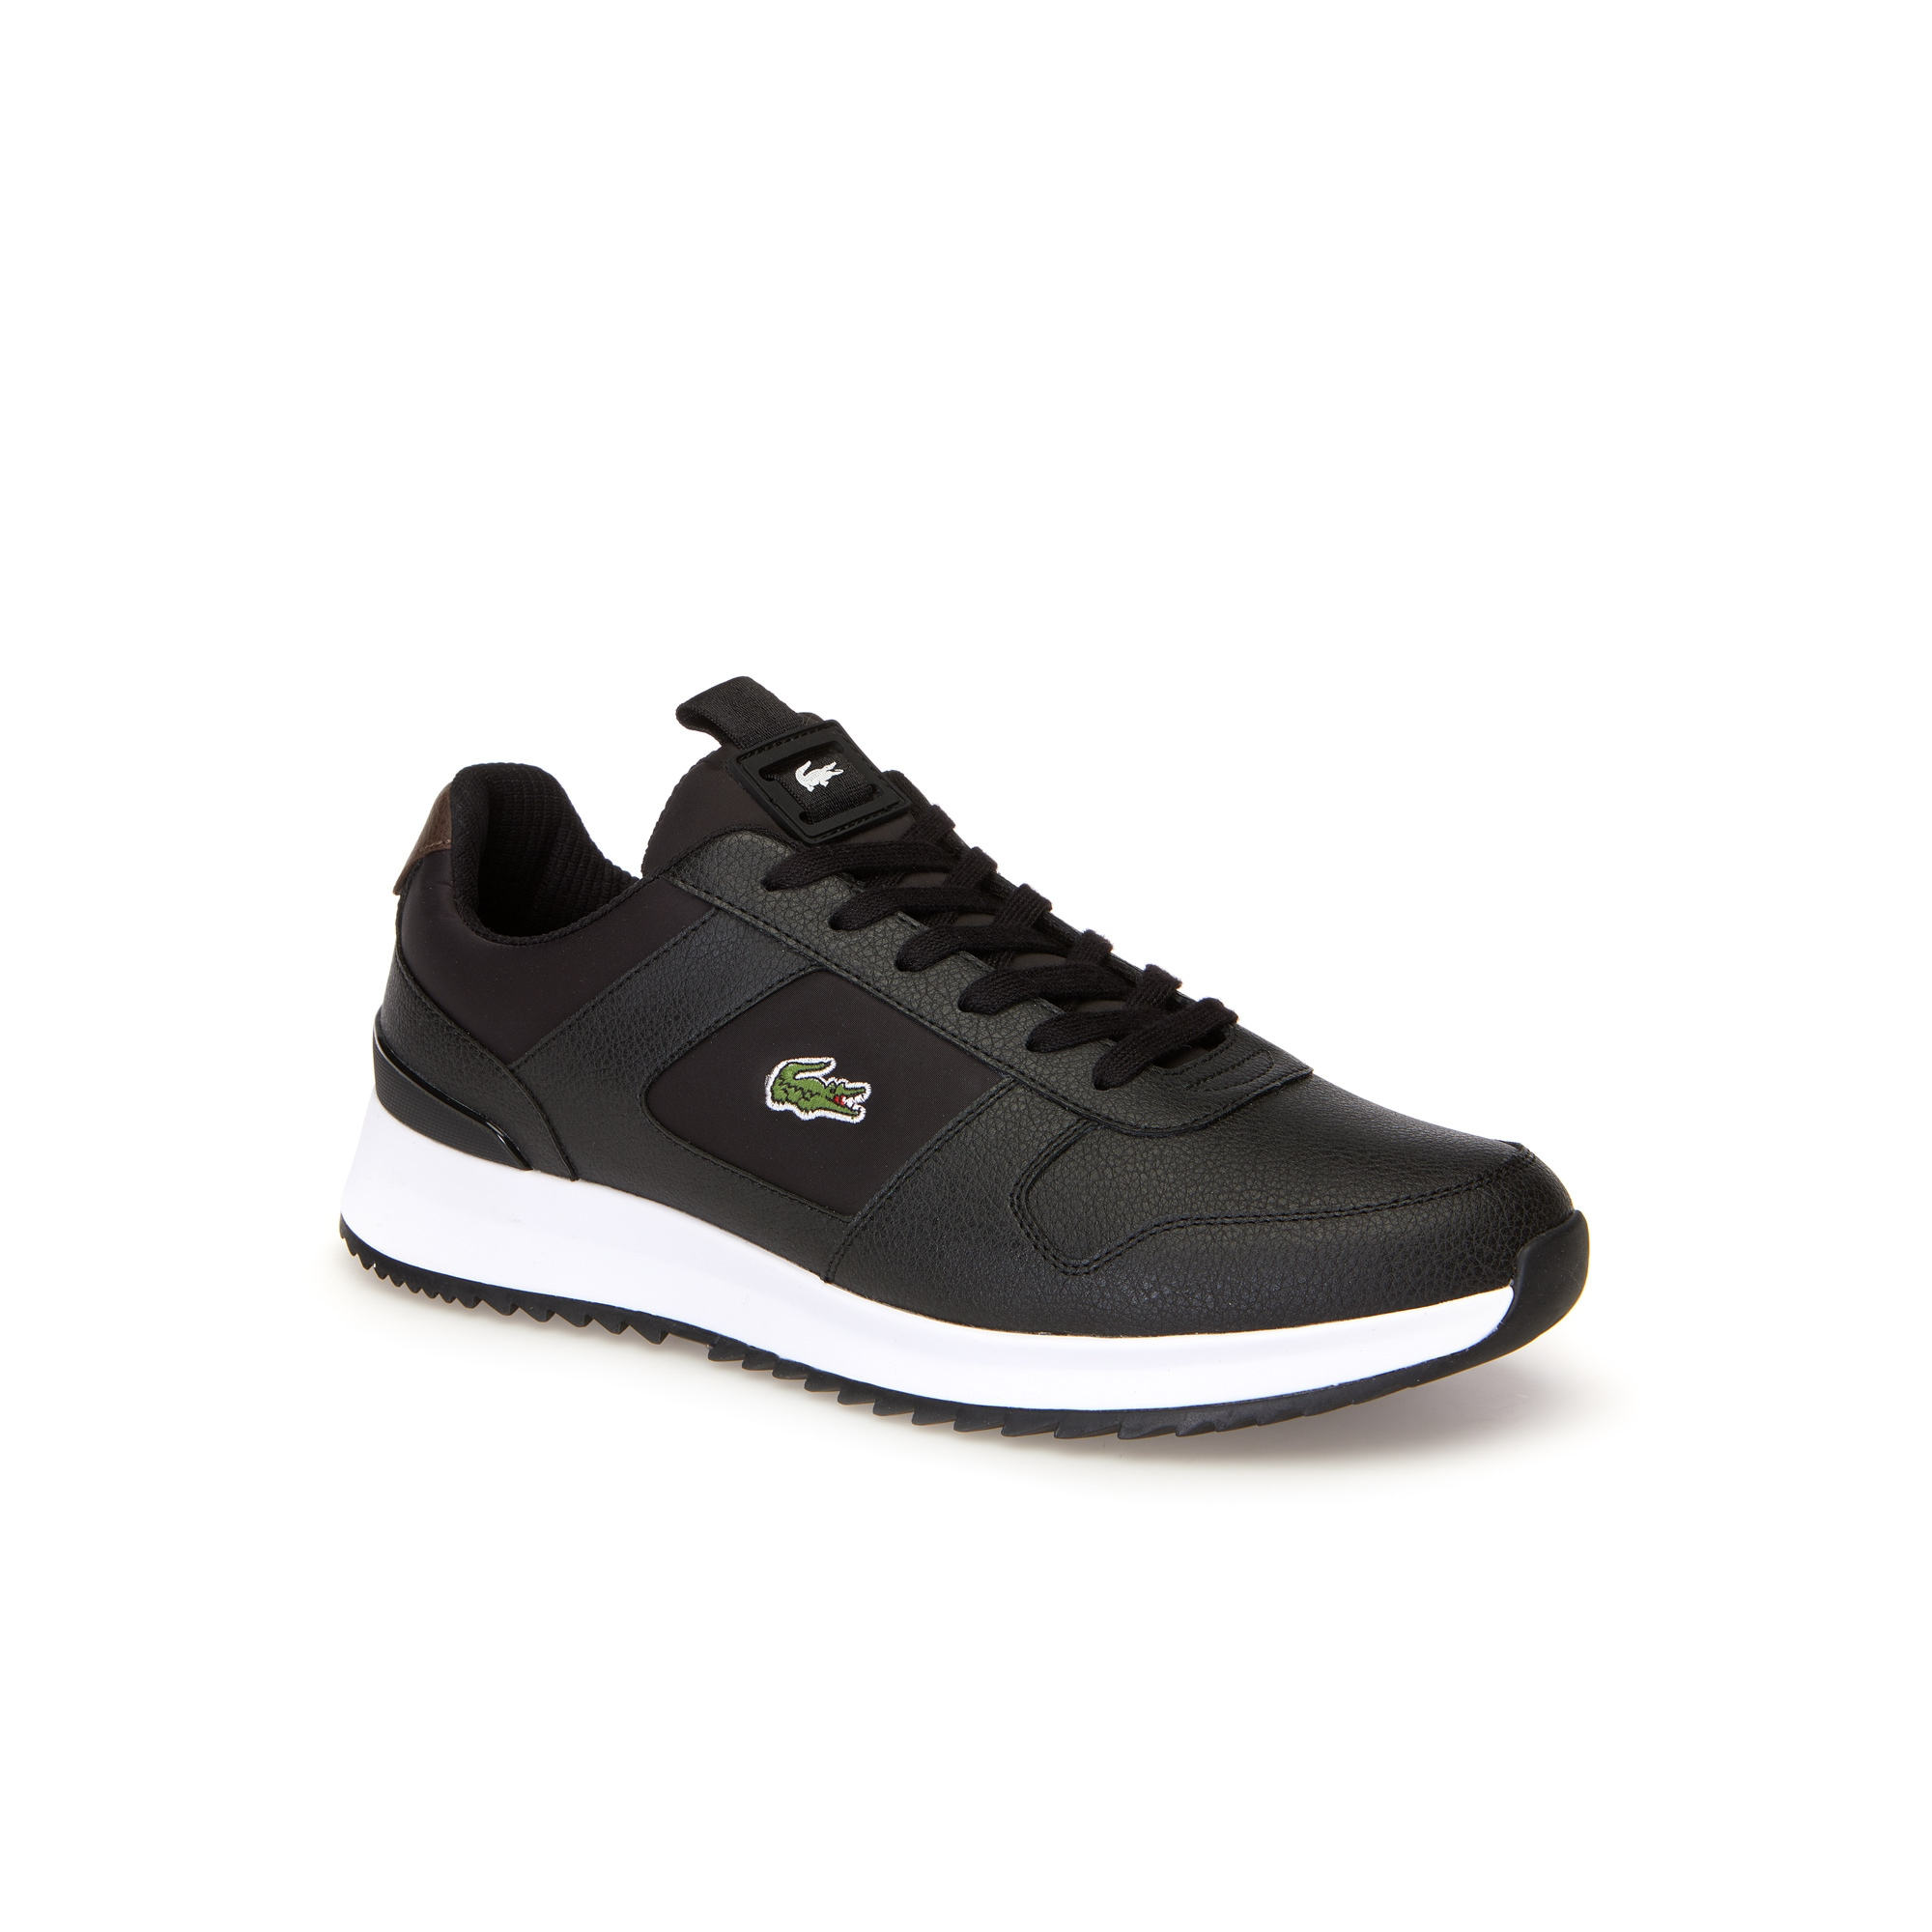 1db220aee7 Collection Lacoste Chaussures Chaussures Homme Collection Lacoste  Chaussures Homme qBT67